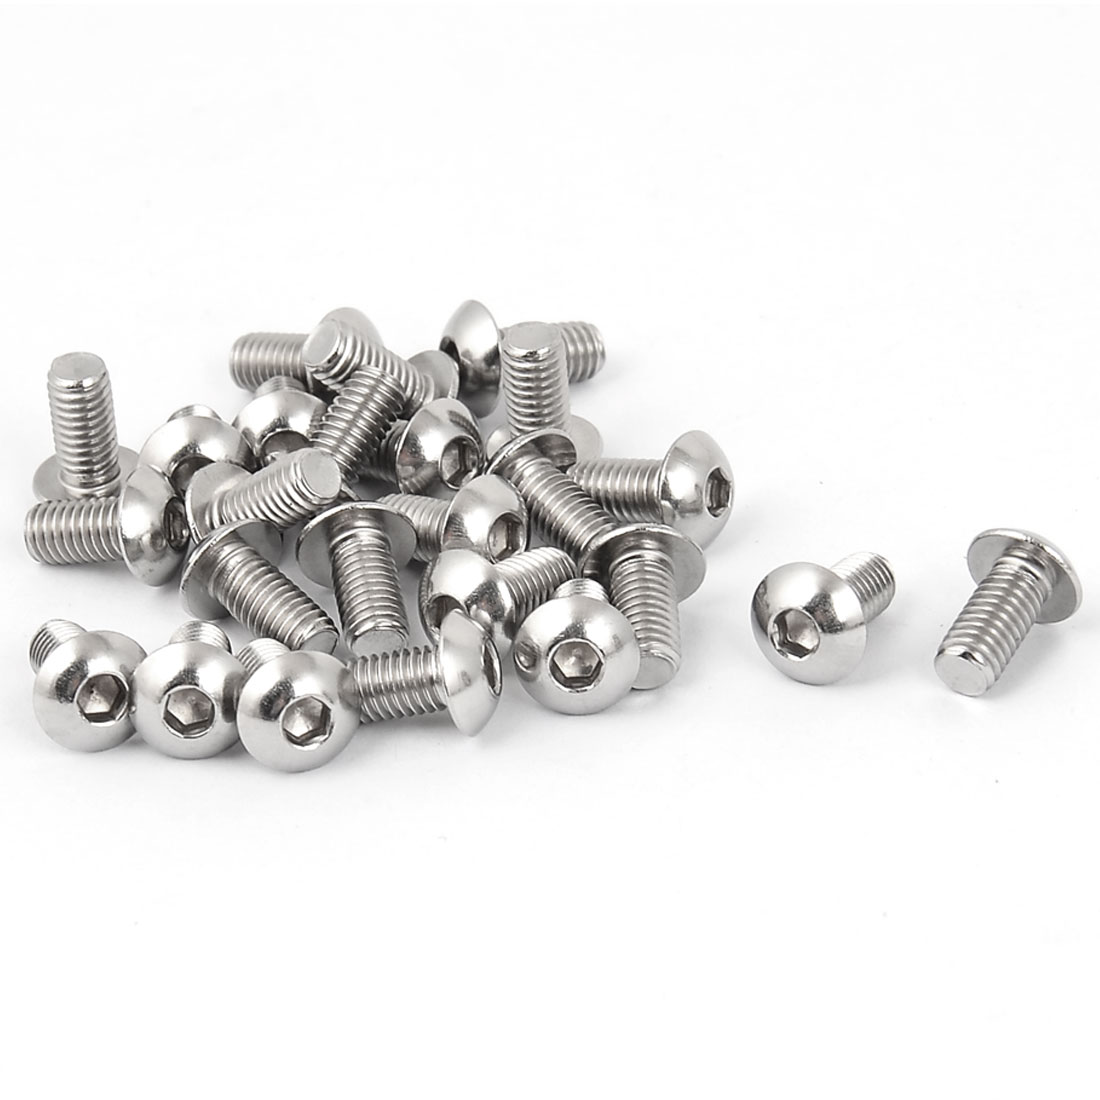 M5 x 10mm Stainless Steel Button Head Socket Cap Screw Silver Tone 25 Pcs